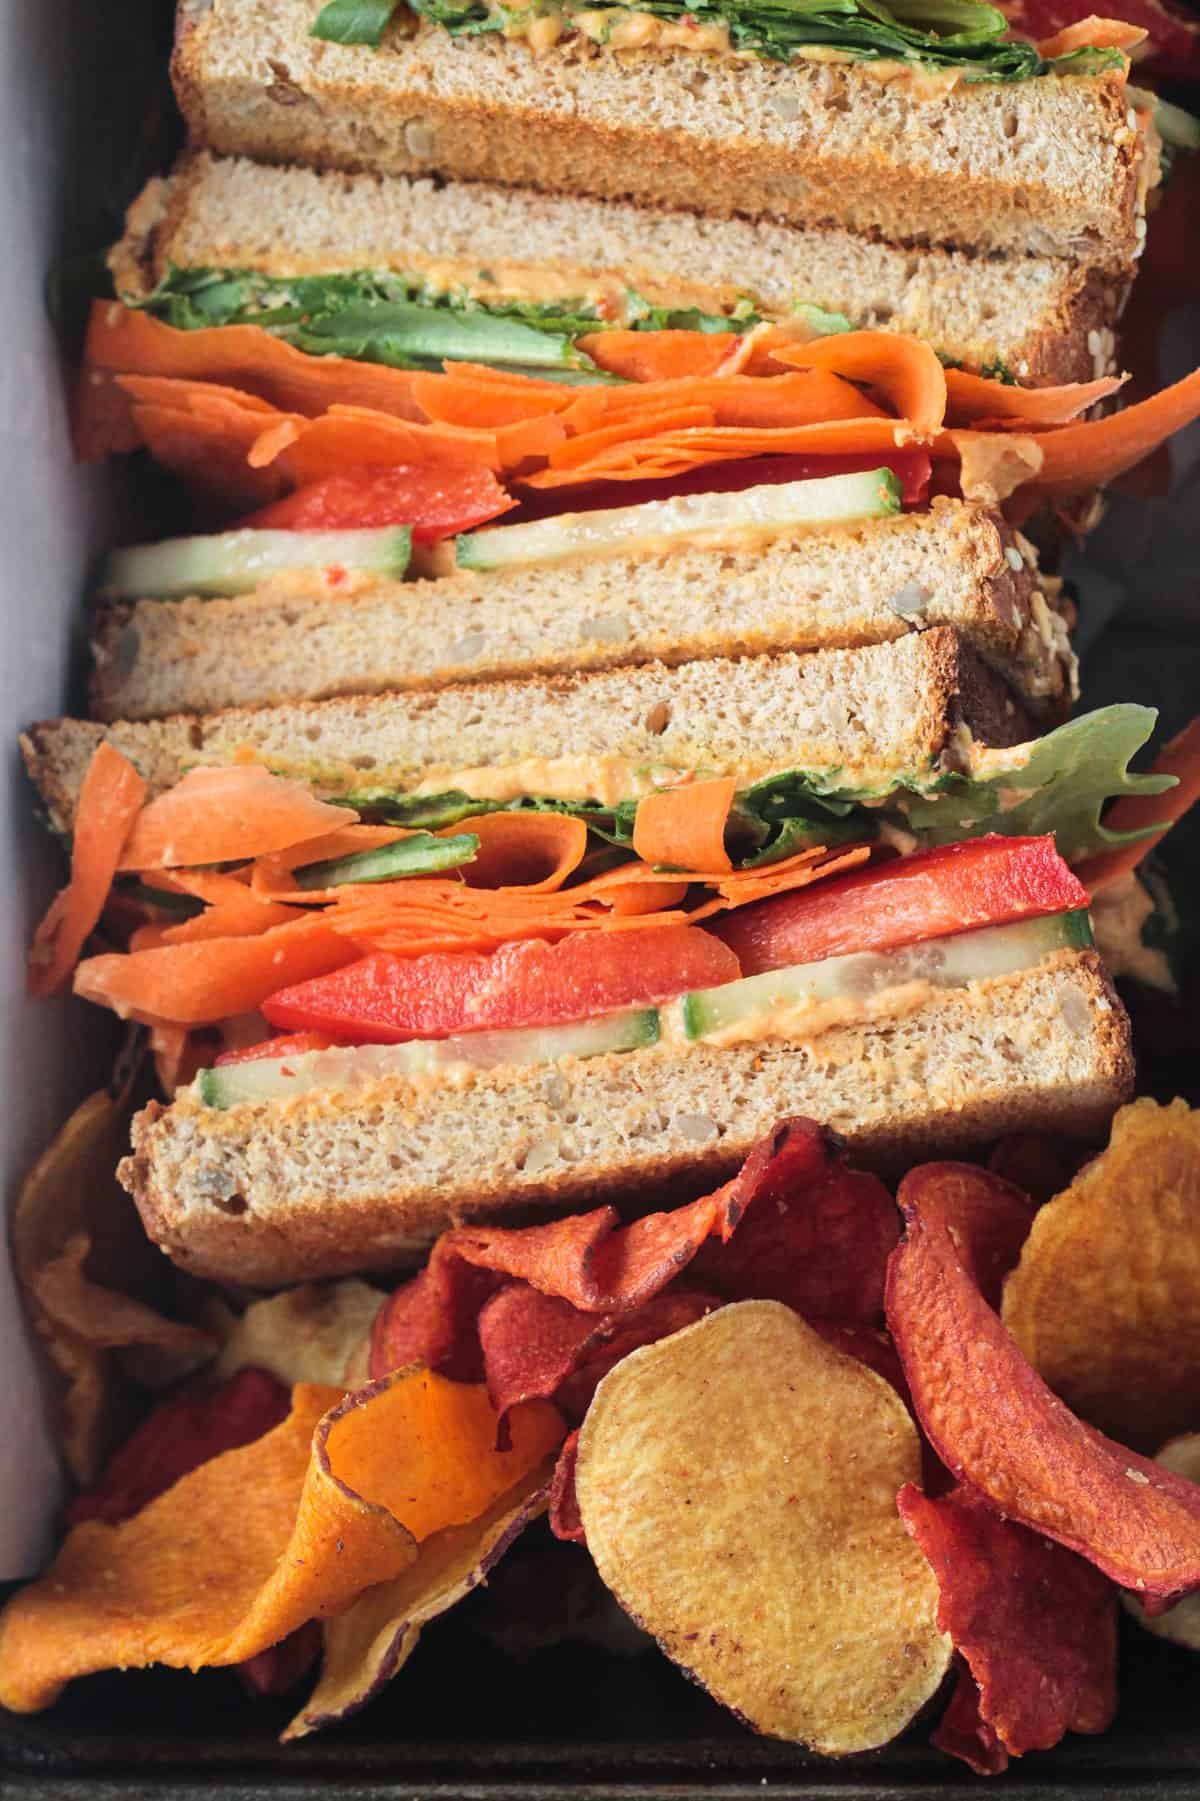 Close up of vegetables and hummus on a half of sandwich.